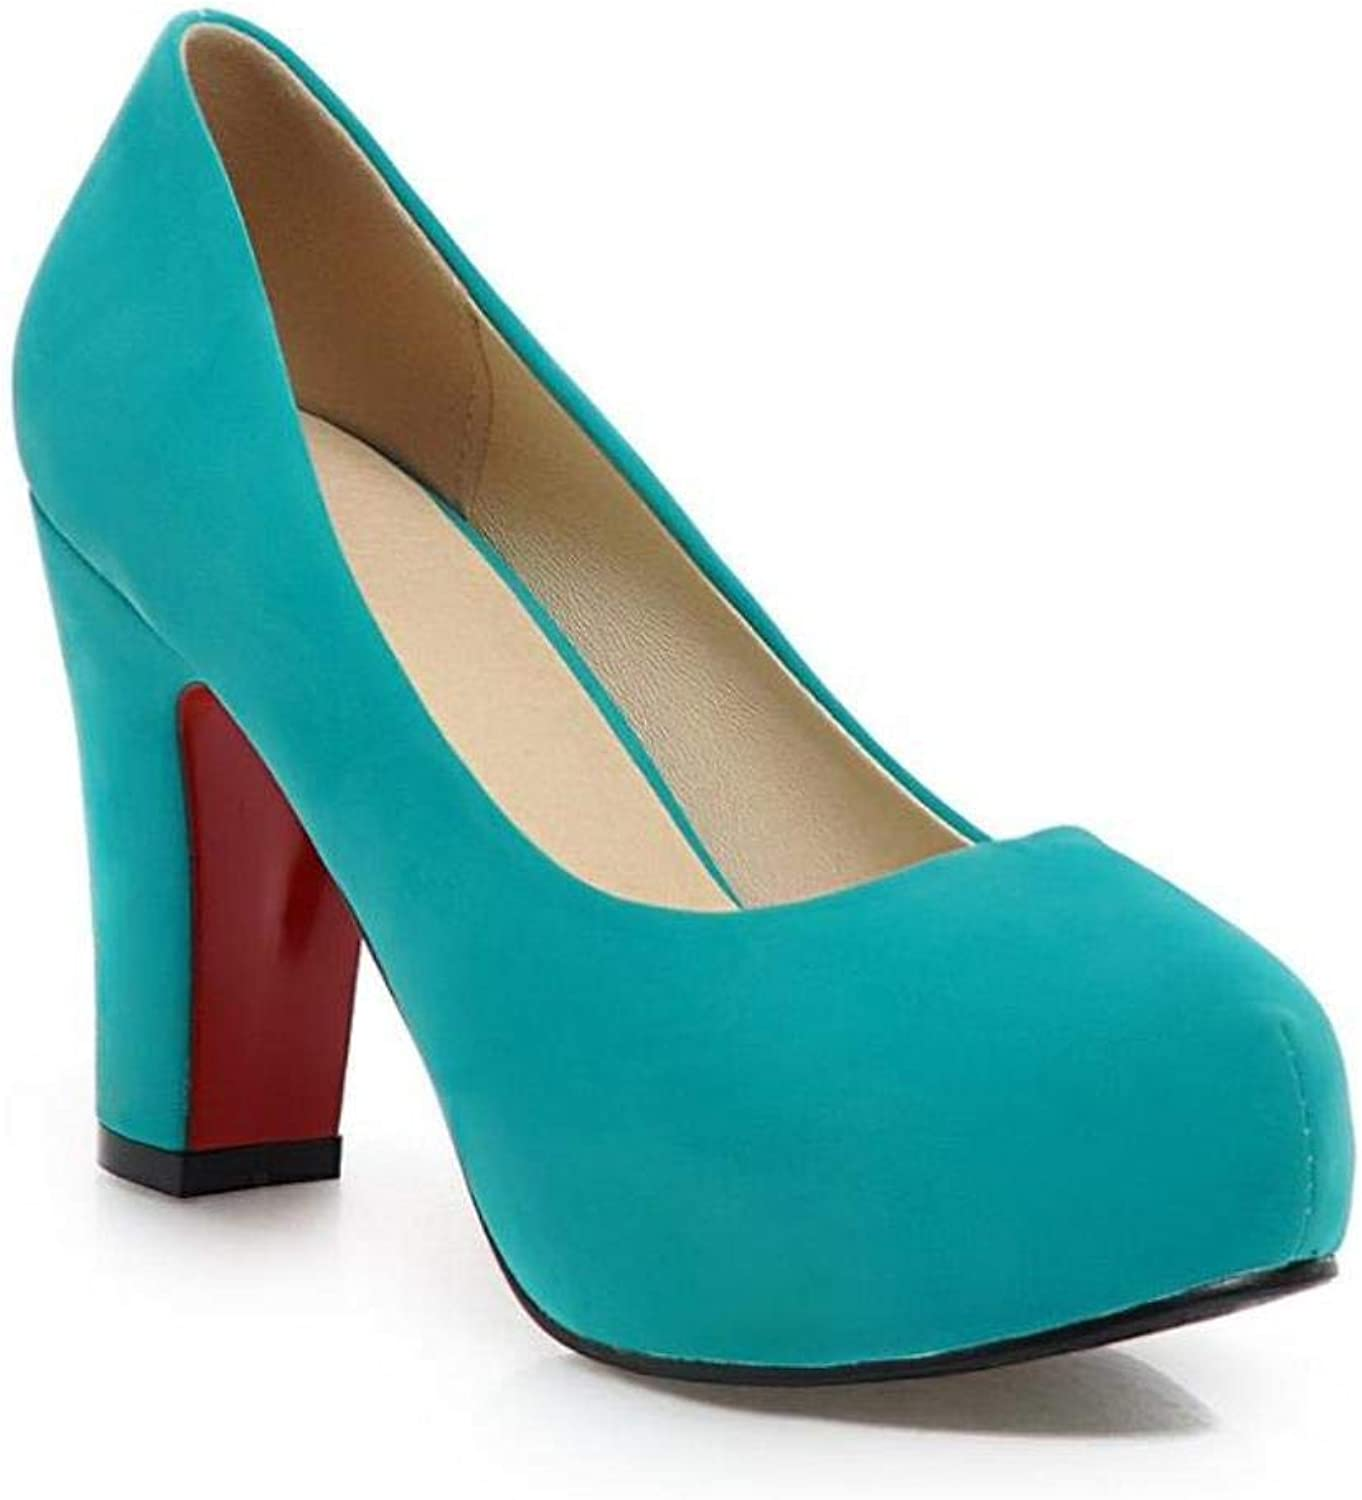 Women Office Party Shallow Solid High Heel Big Size Pumps